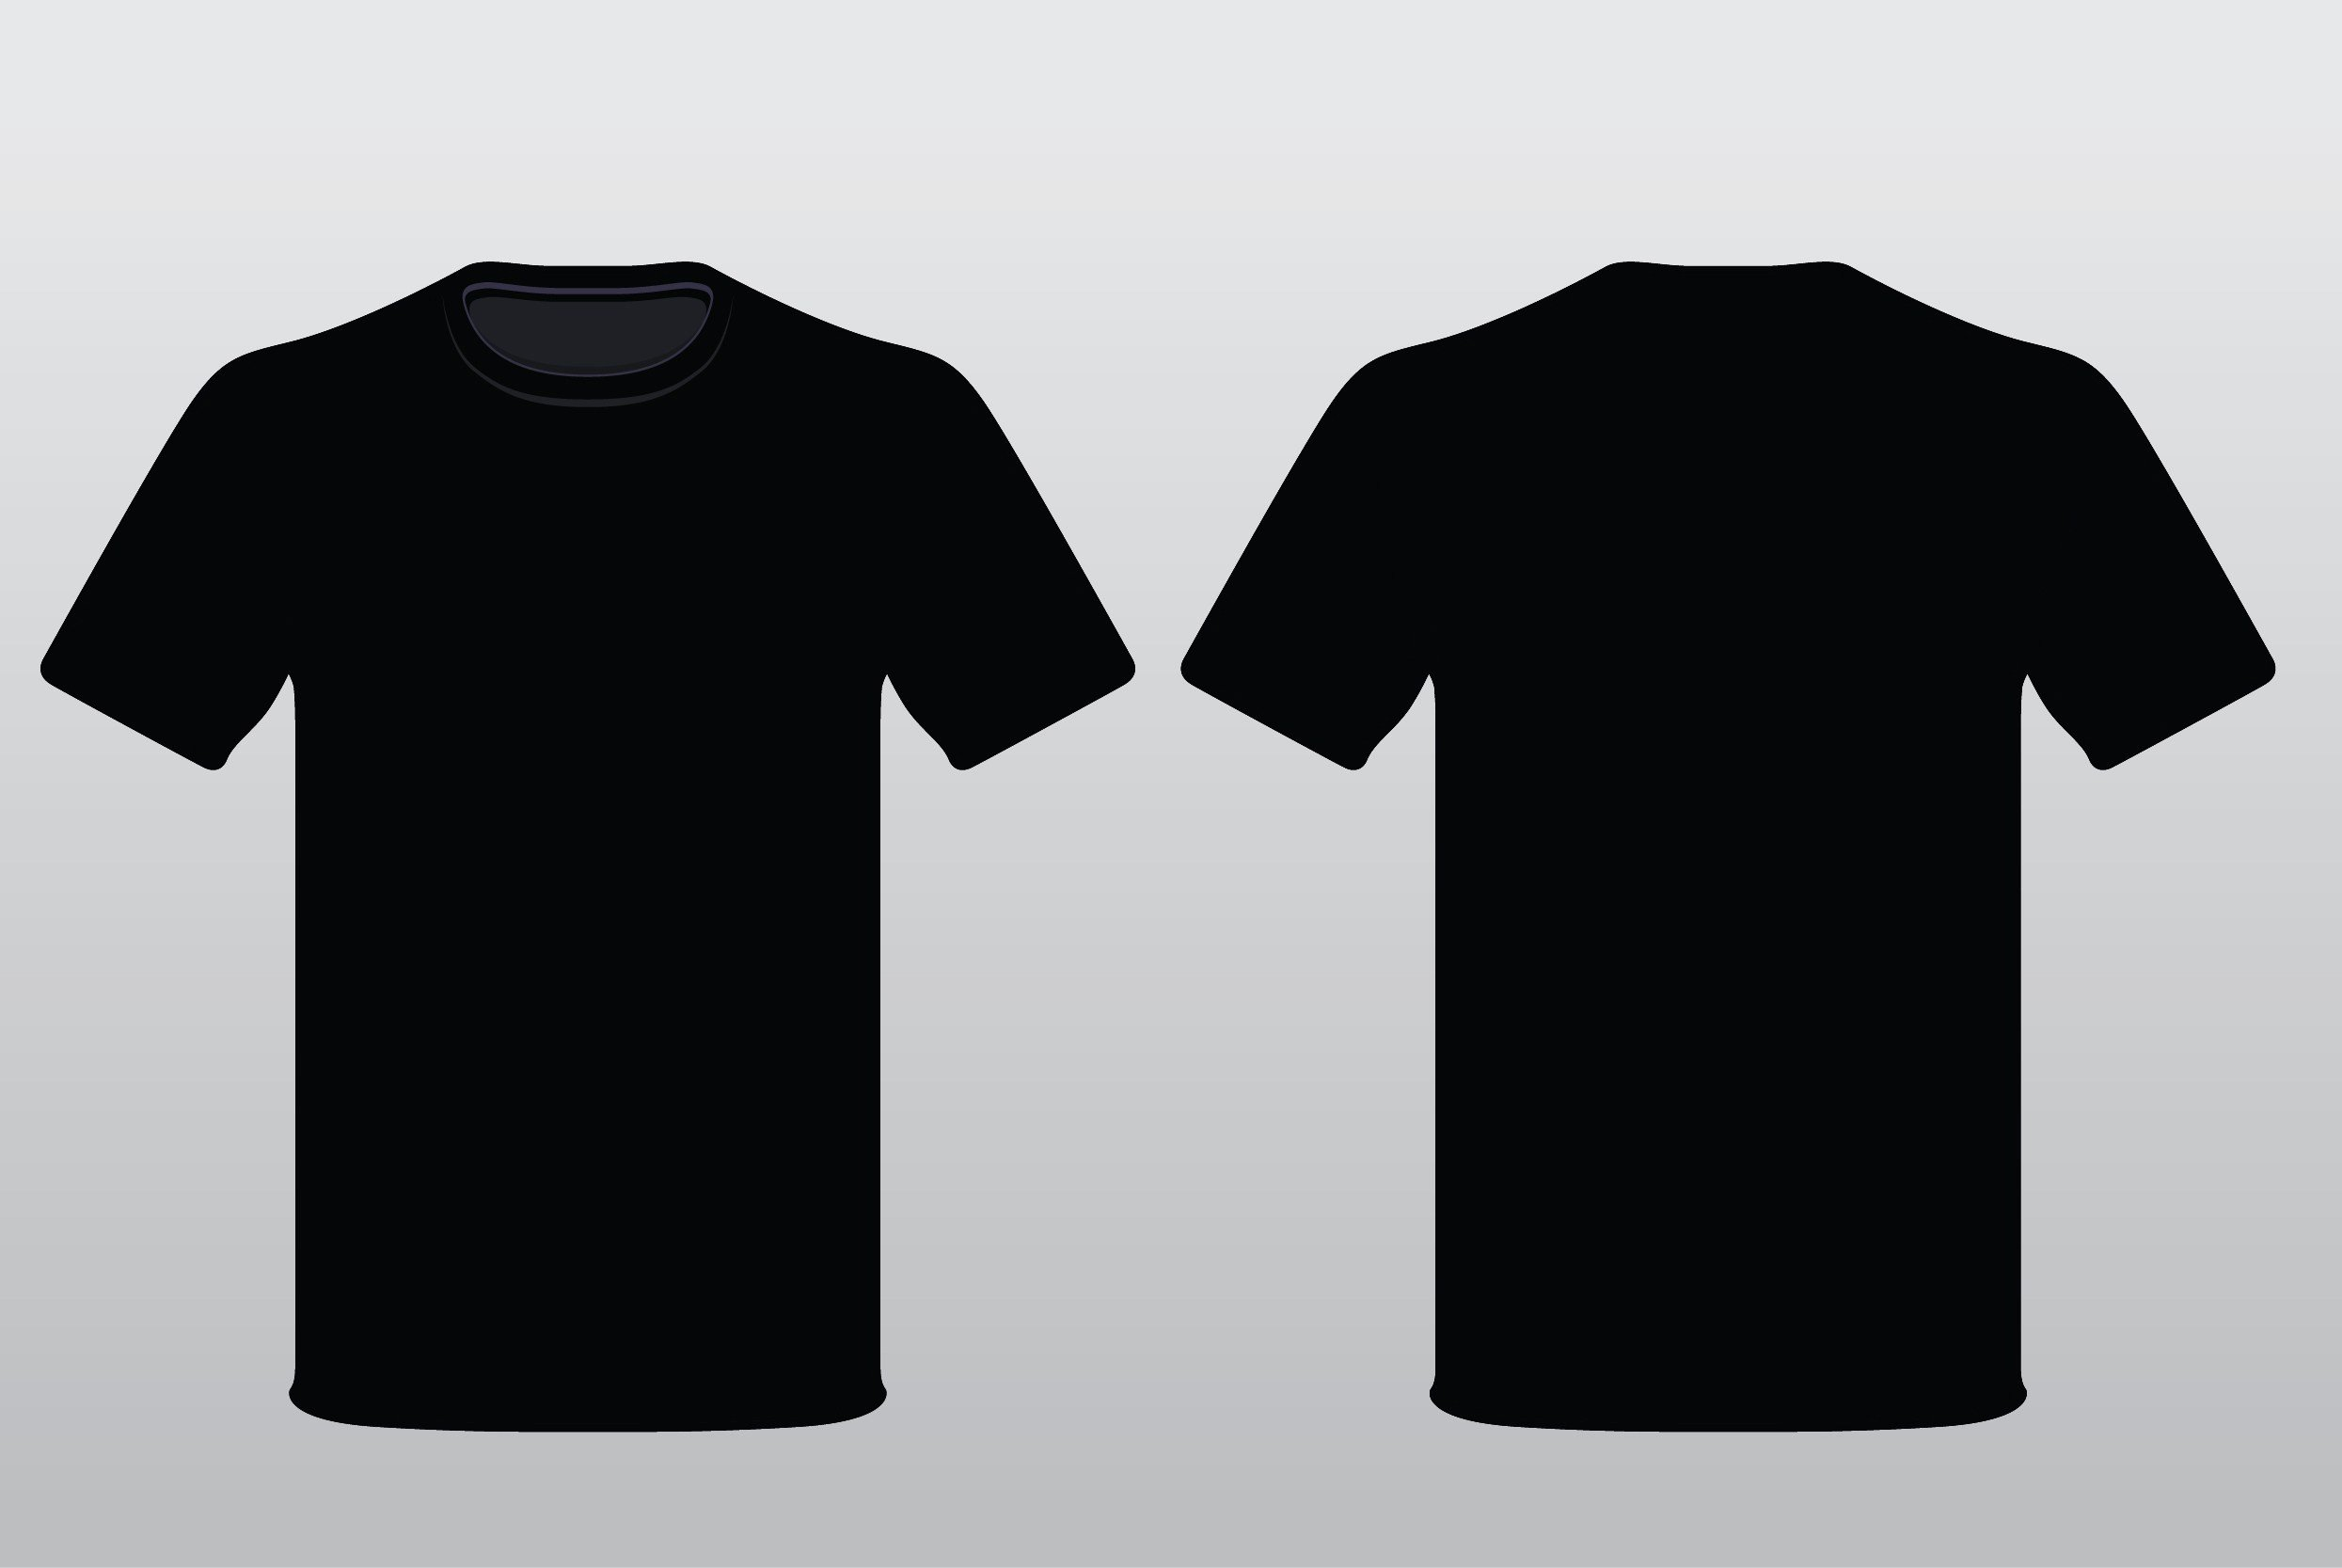 Free T Shirt Template All Over Print T Shirt Design Templates